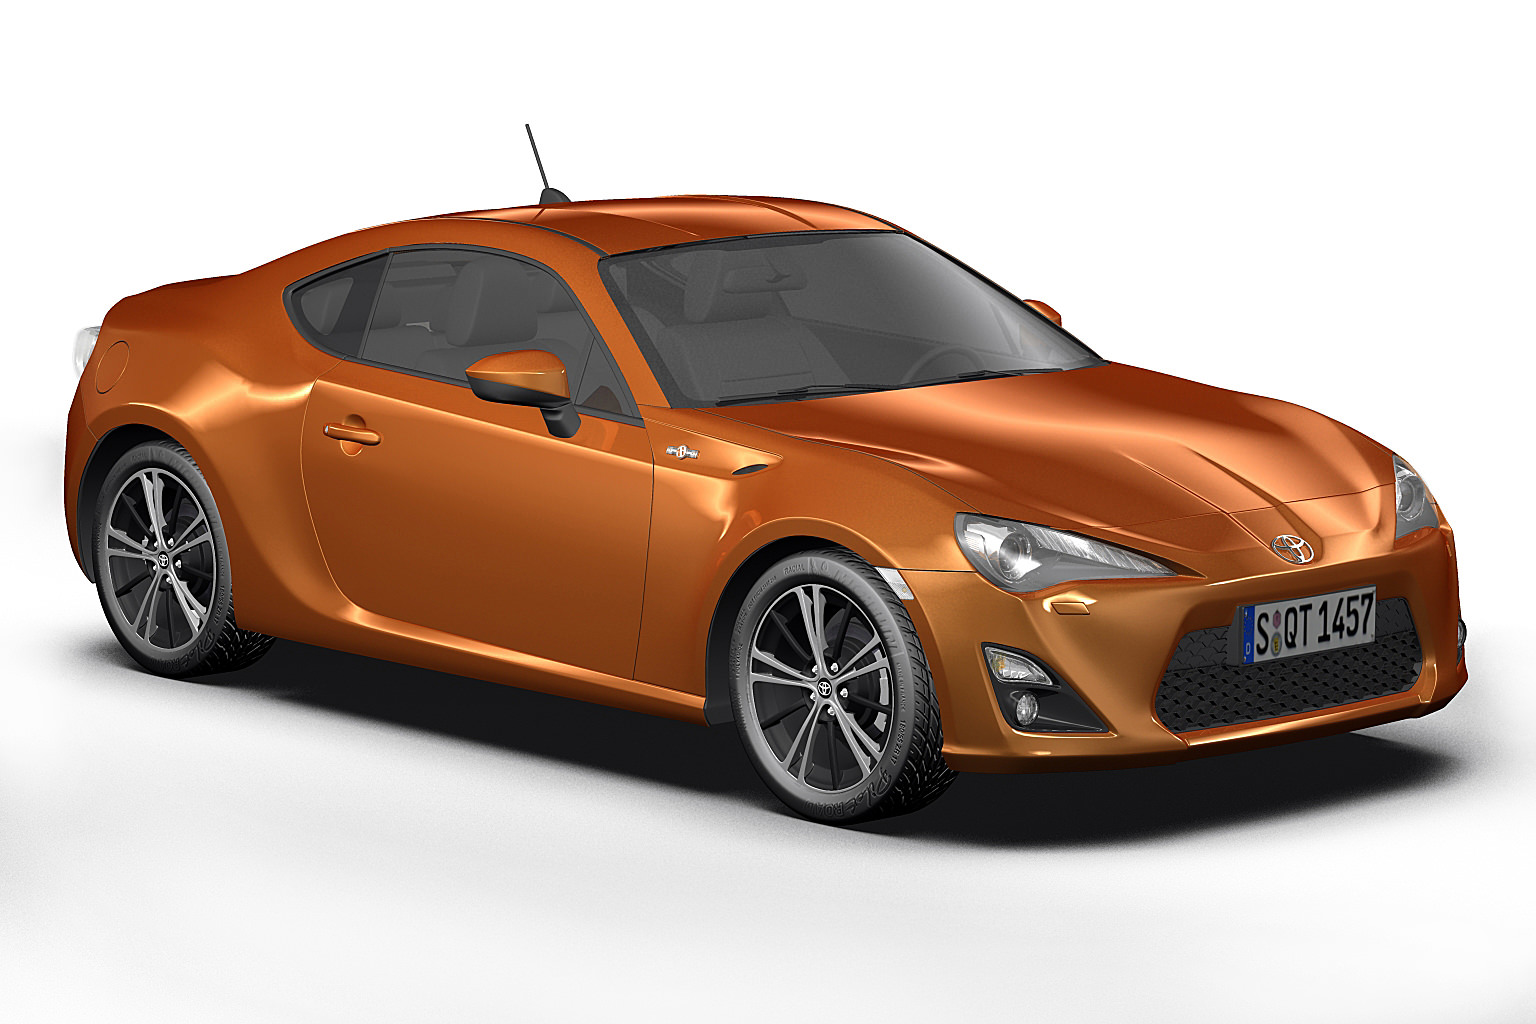 2013 toyota gt 86 3d model max obj 3ds fbx c4d lwo lw lws. Black Bedroom Furniture Sets. Home Design Ideas